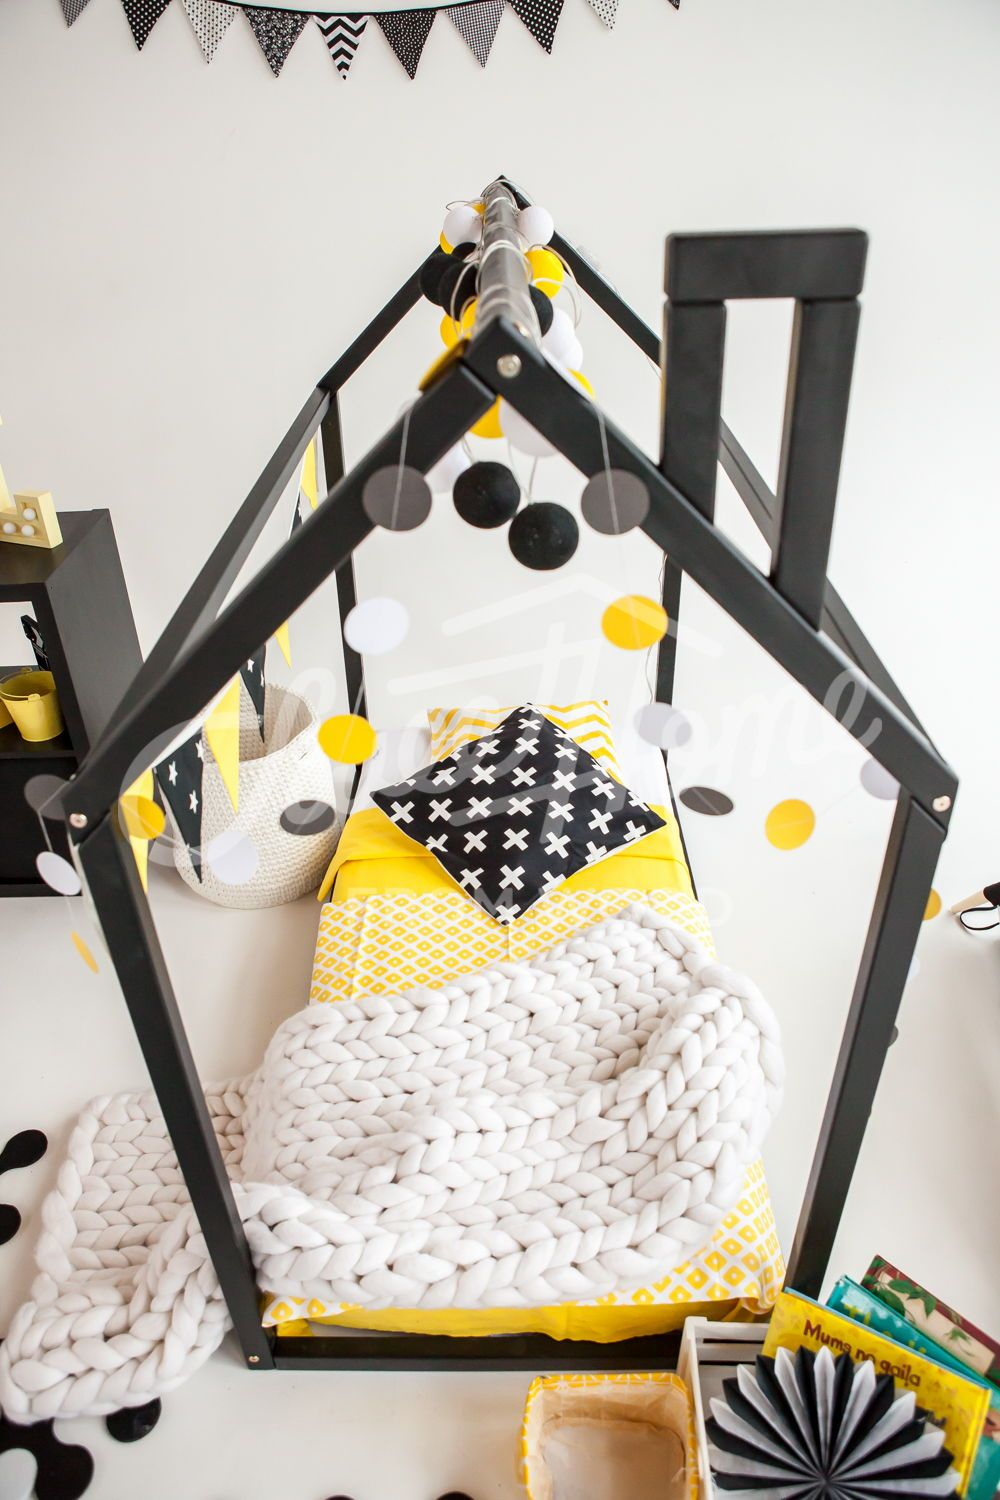 Toddler Bed House Bed Children Bed Wooden House Tent Bed Wood House Wood Nursery Kids Teepee Bed Wood Bed Frame Wood House Bed Kids Gift Kid Beds Kids Bed Frames Batman